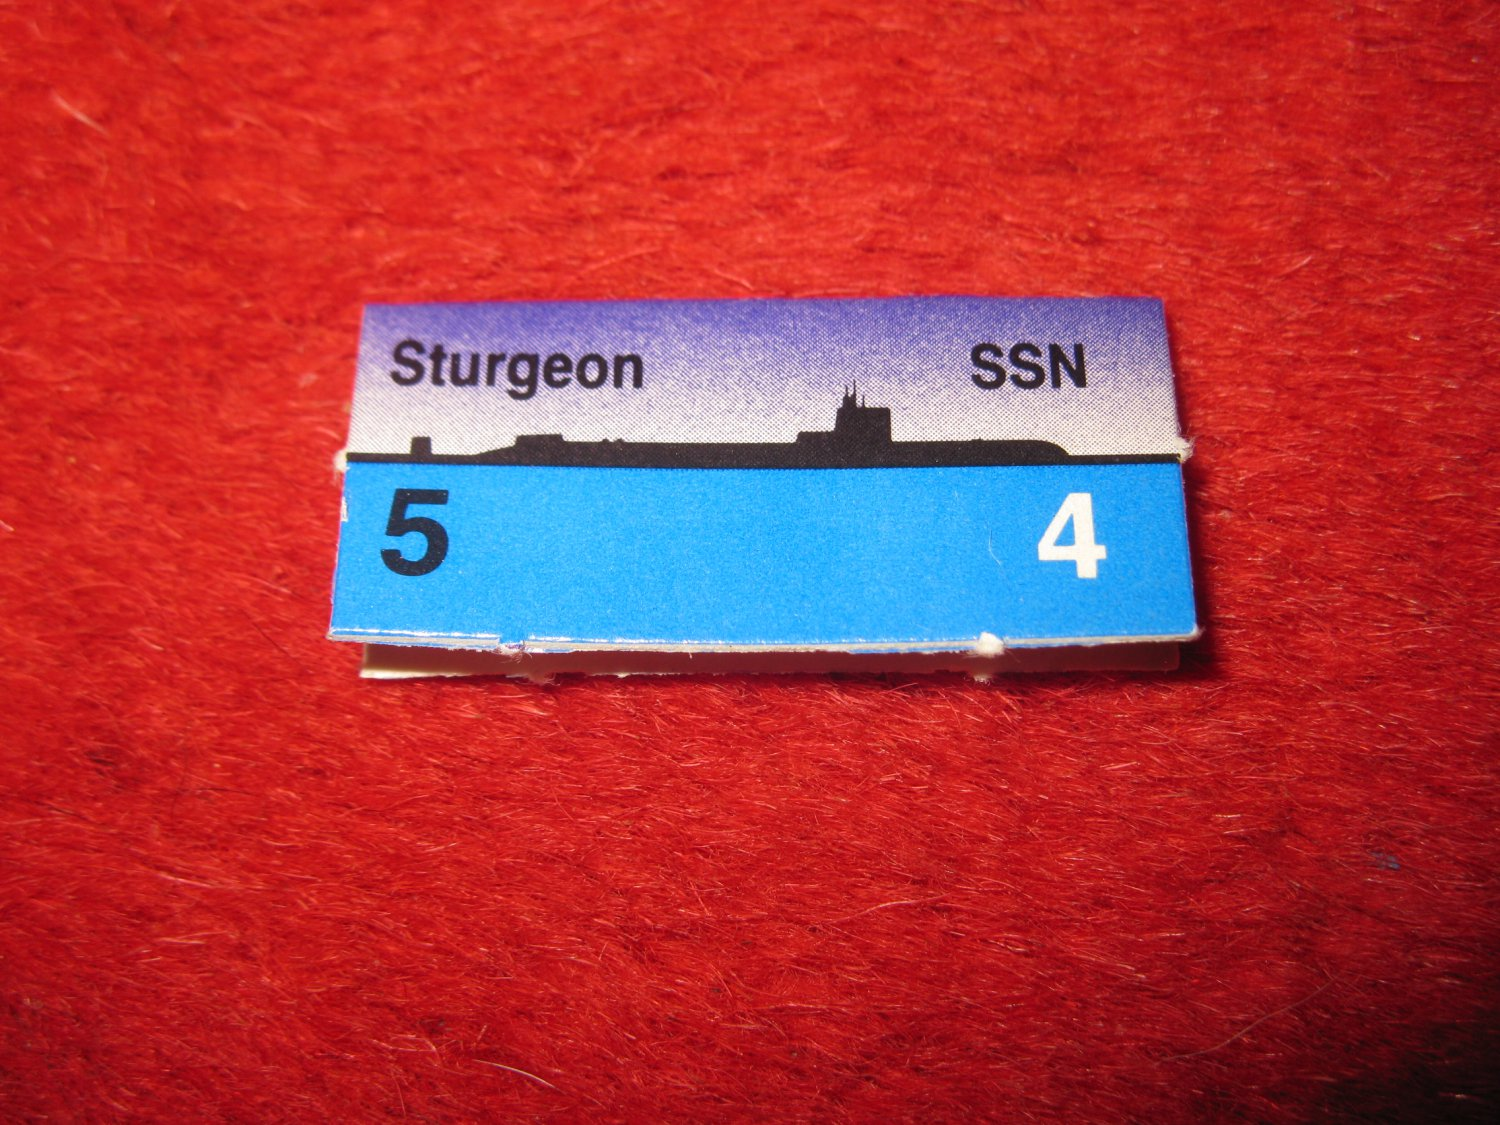 1988 The Hunt for Red October Board Game Piece: Sturgeon Blue Ship Tab- NATO